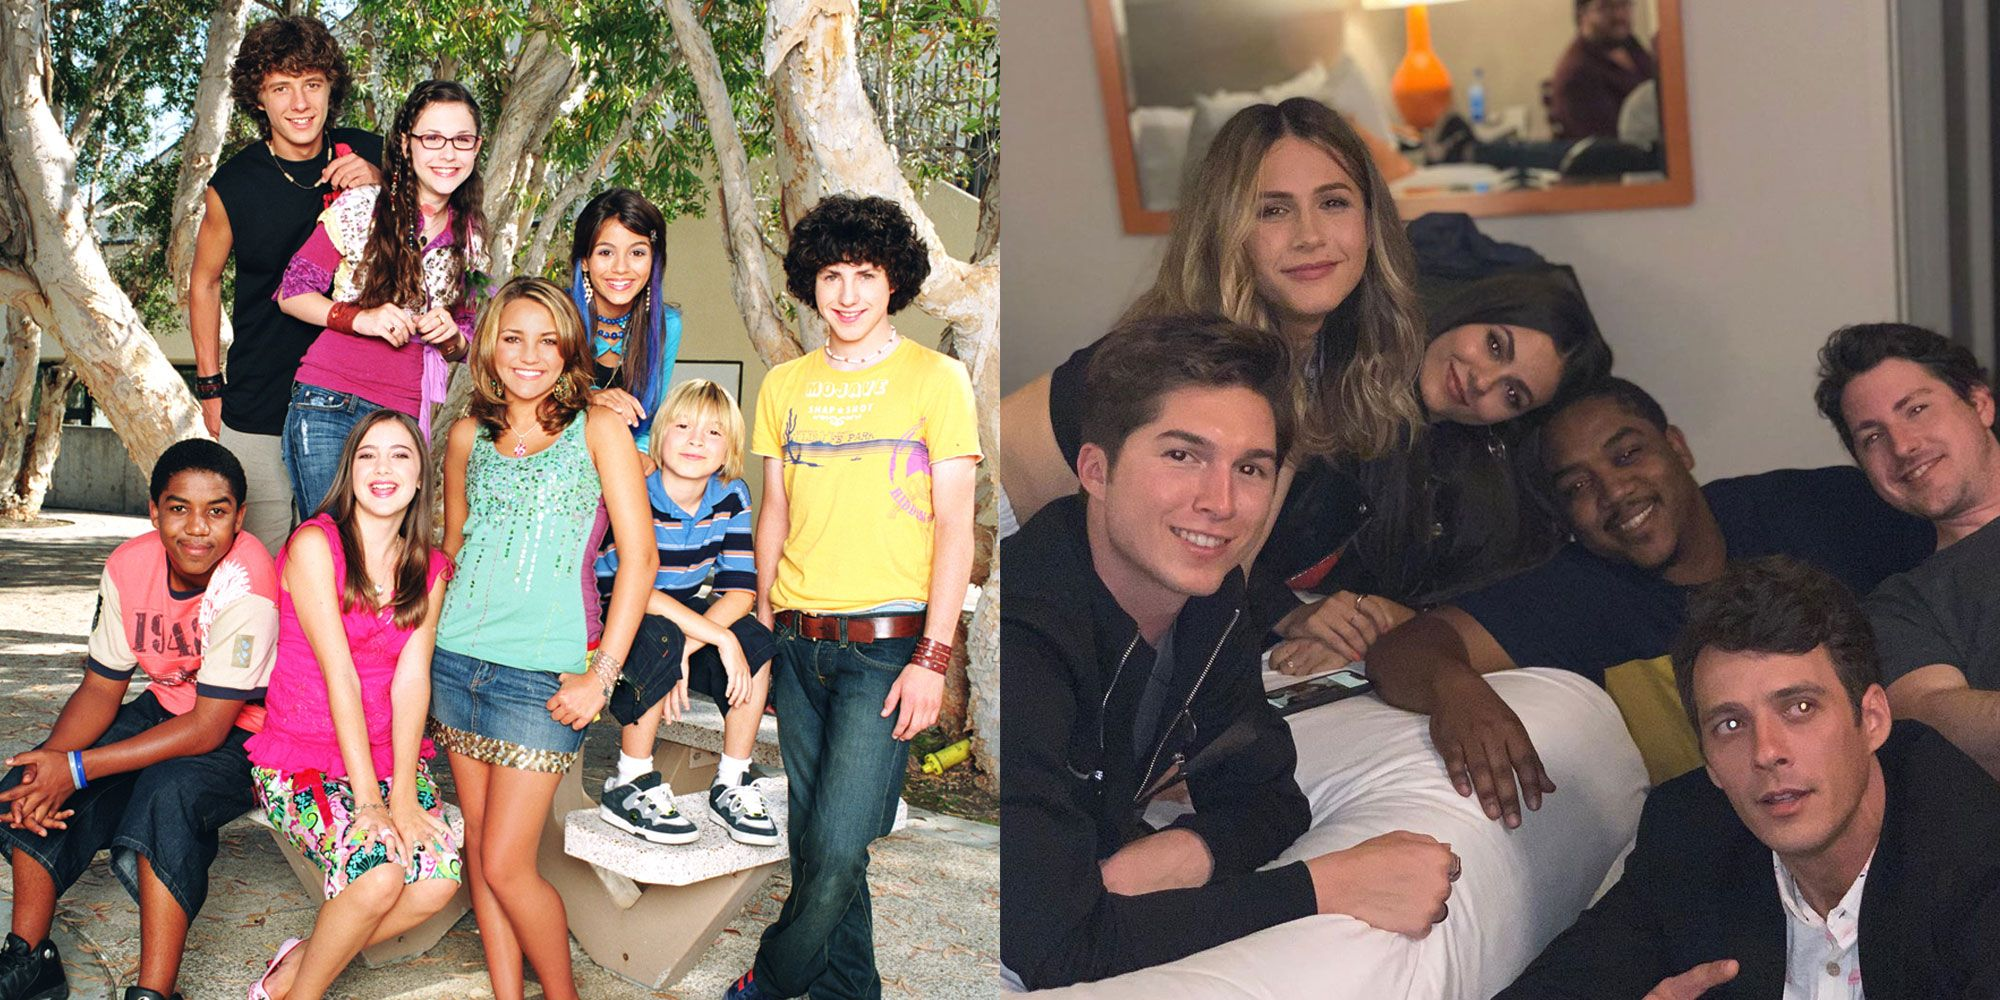 Zoey 101 Star Confirms The Cast Are Working Together Again